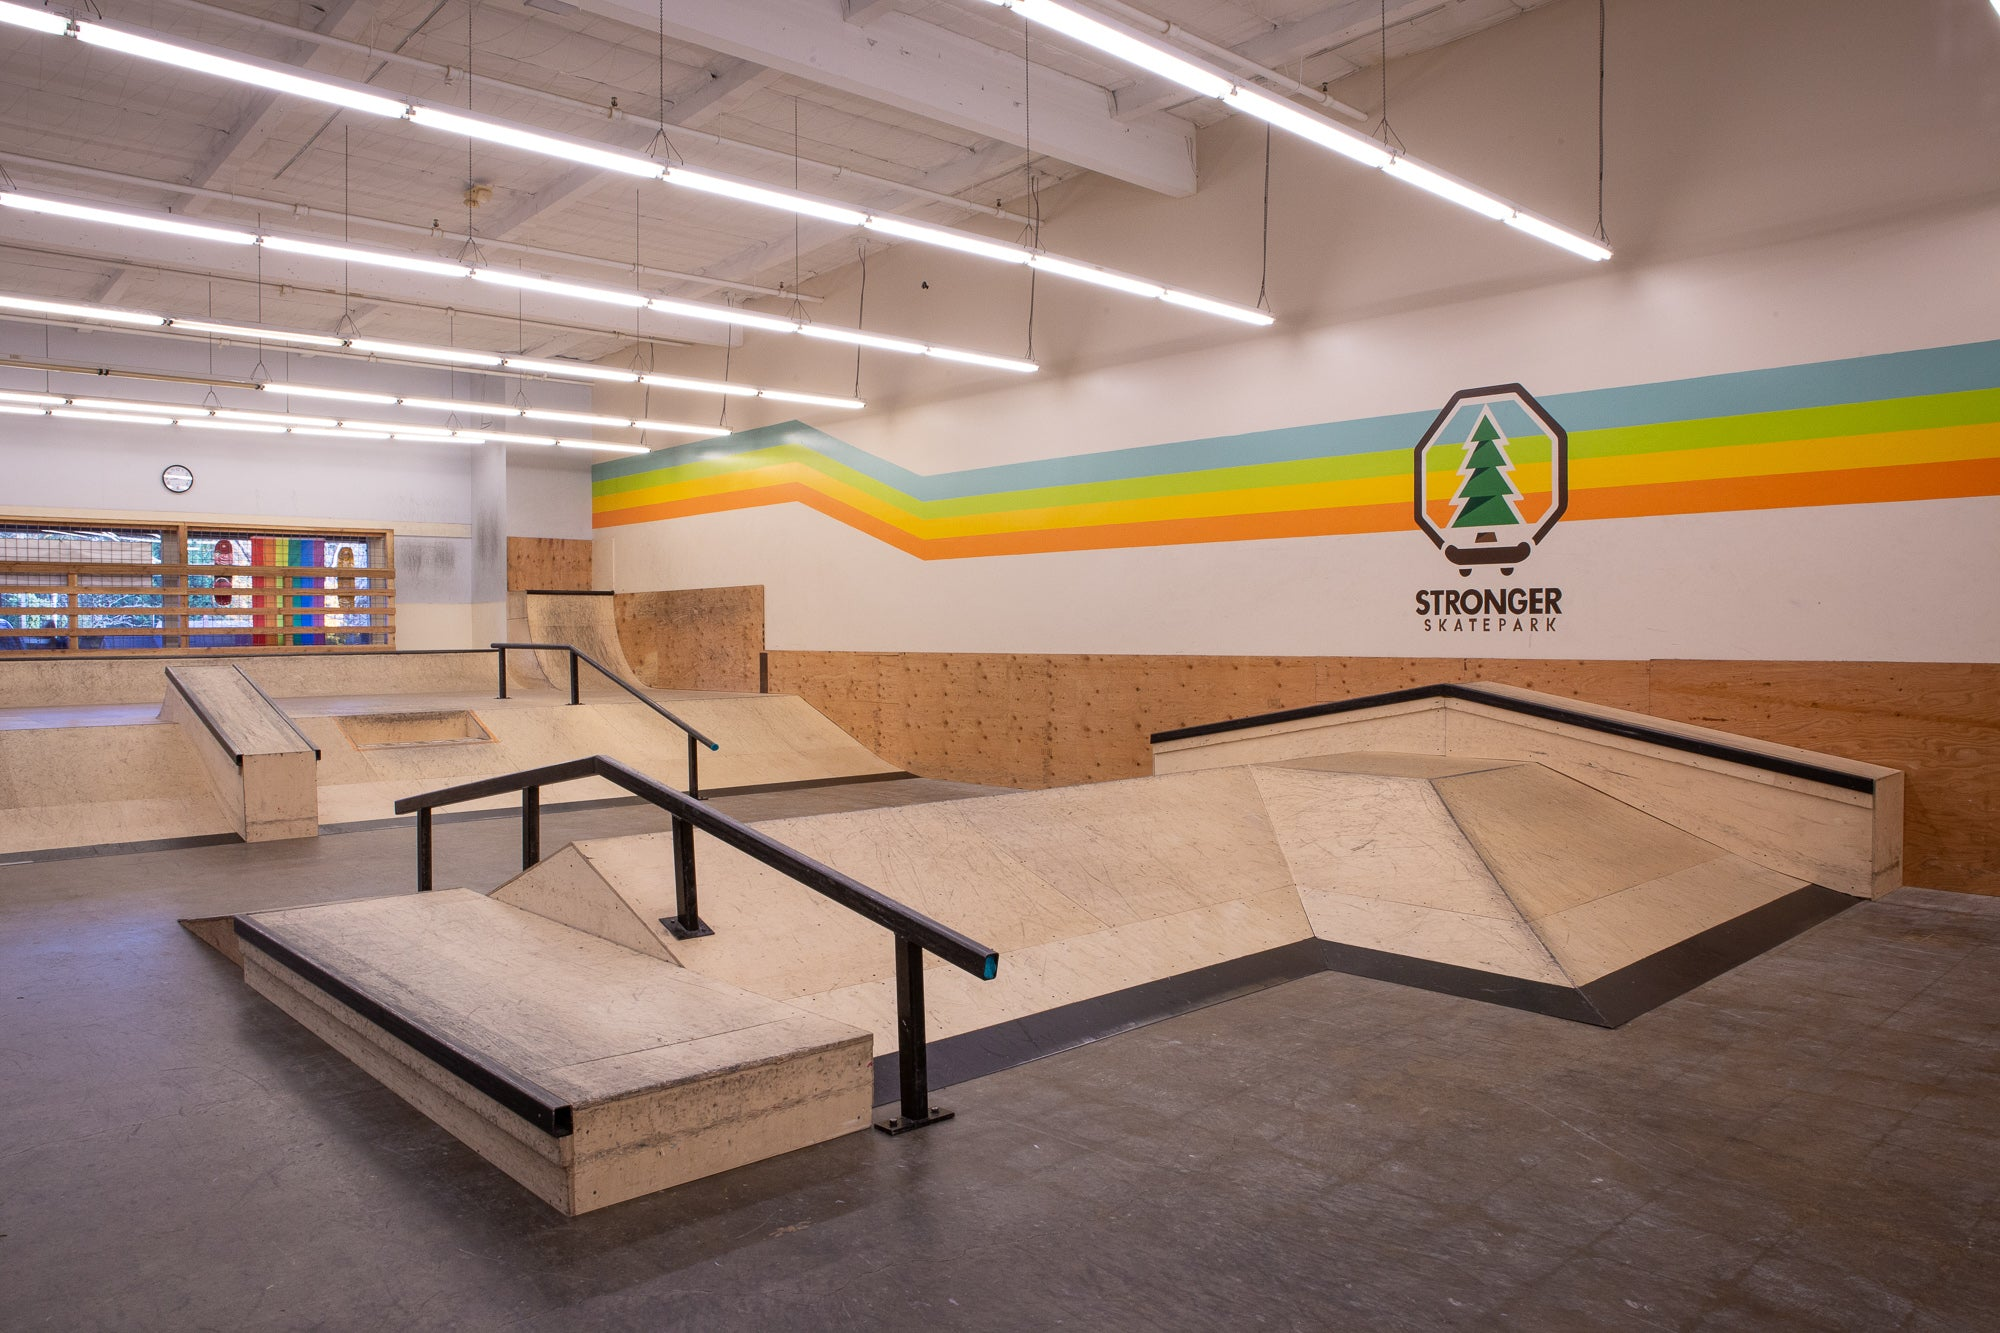 "Skatepark with ramps and rails. Mural on the wall saying ""Stronger Skatepark"" with colorful stripes running the length of the wall."